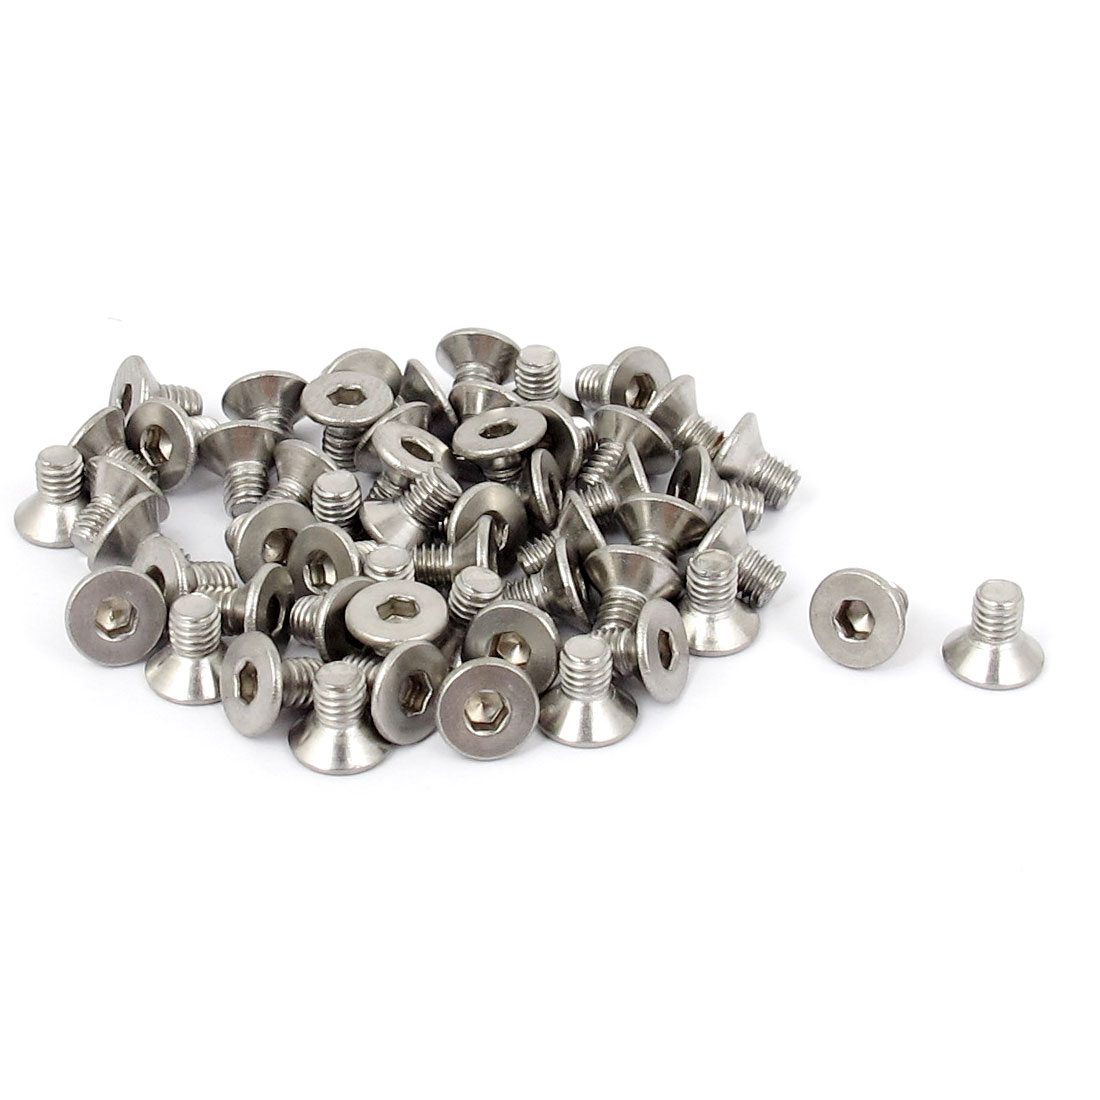 M3x 5mm Metric 304 Stainless Steel Hex Socket Countersunk Flat Head Screw Bolts 50pcs